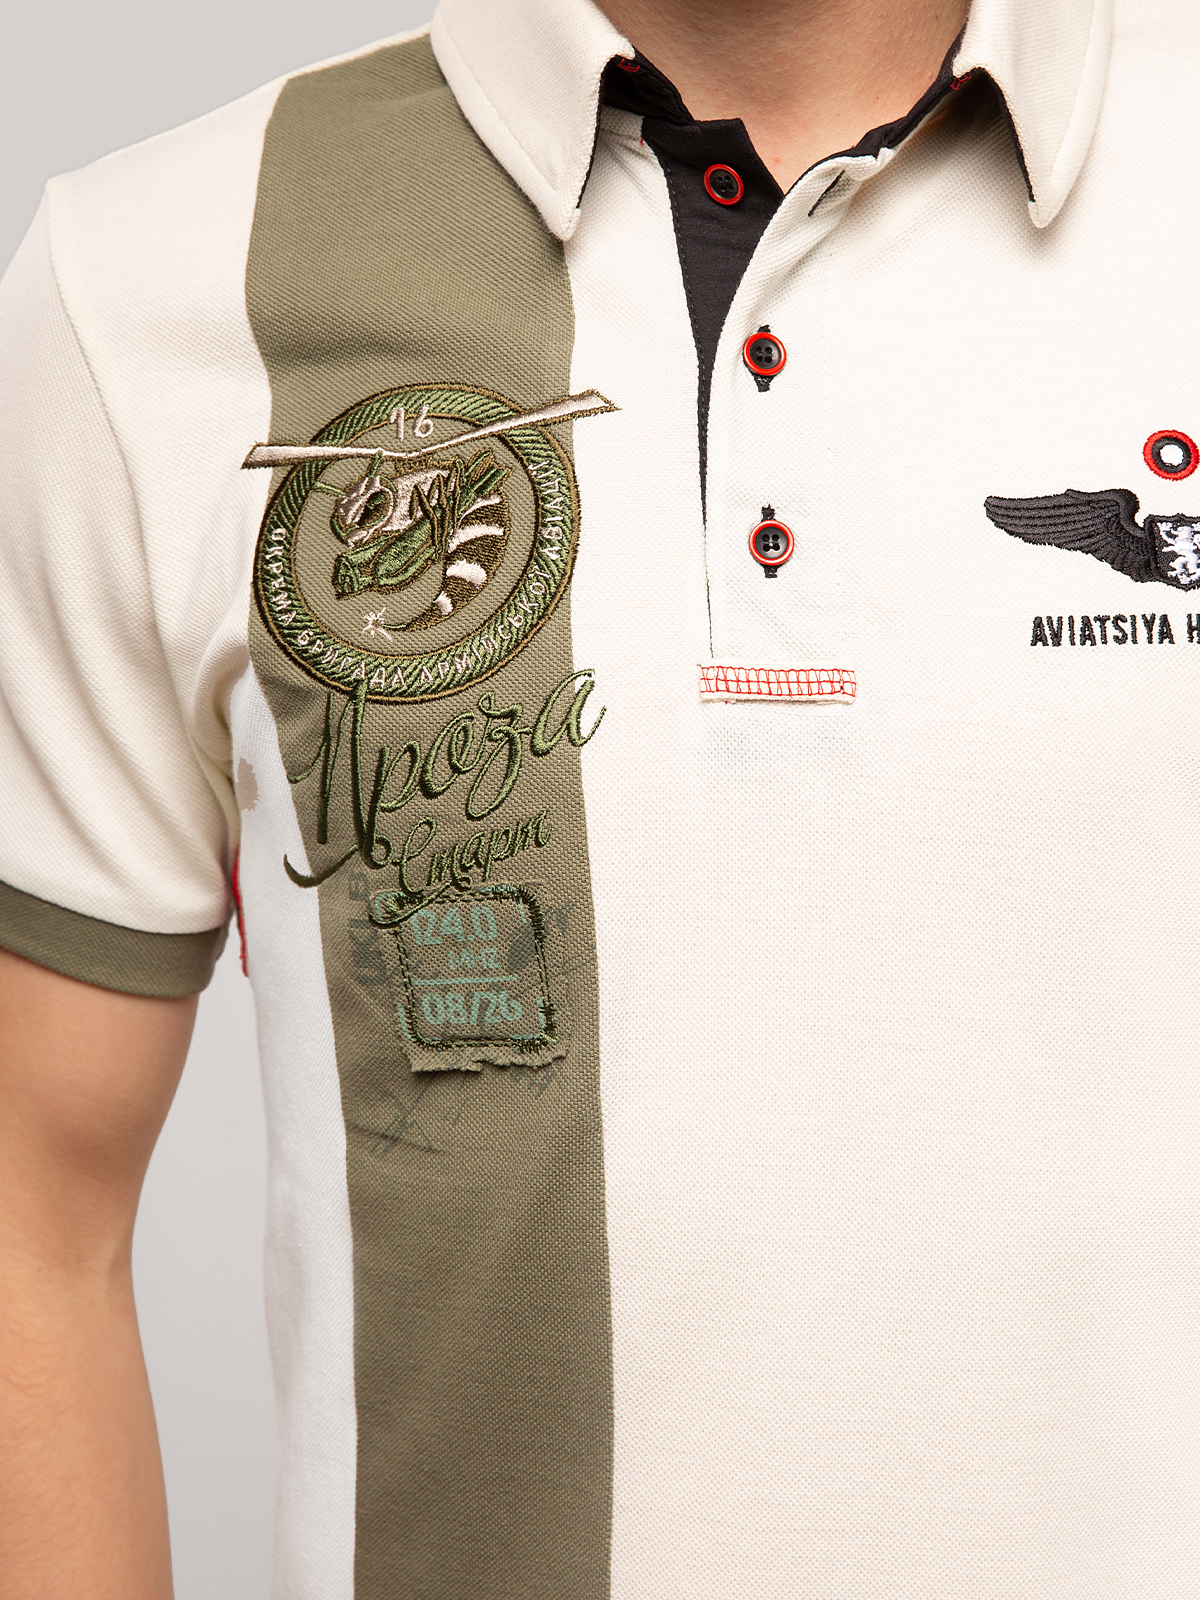 Women's Polo Shirt 16 Brigade. Color ivory.  Size worn by the model: S.